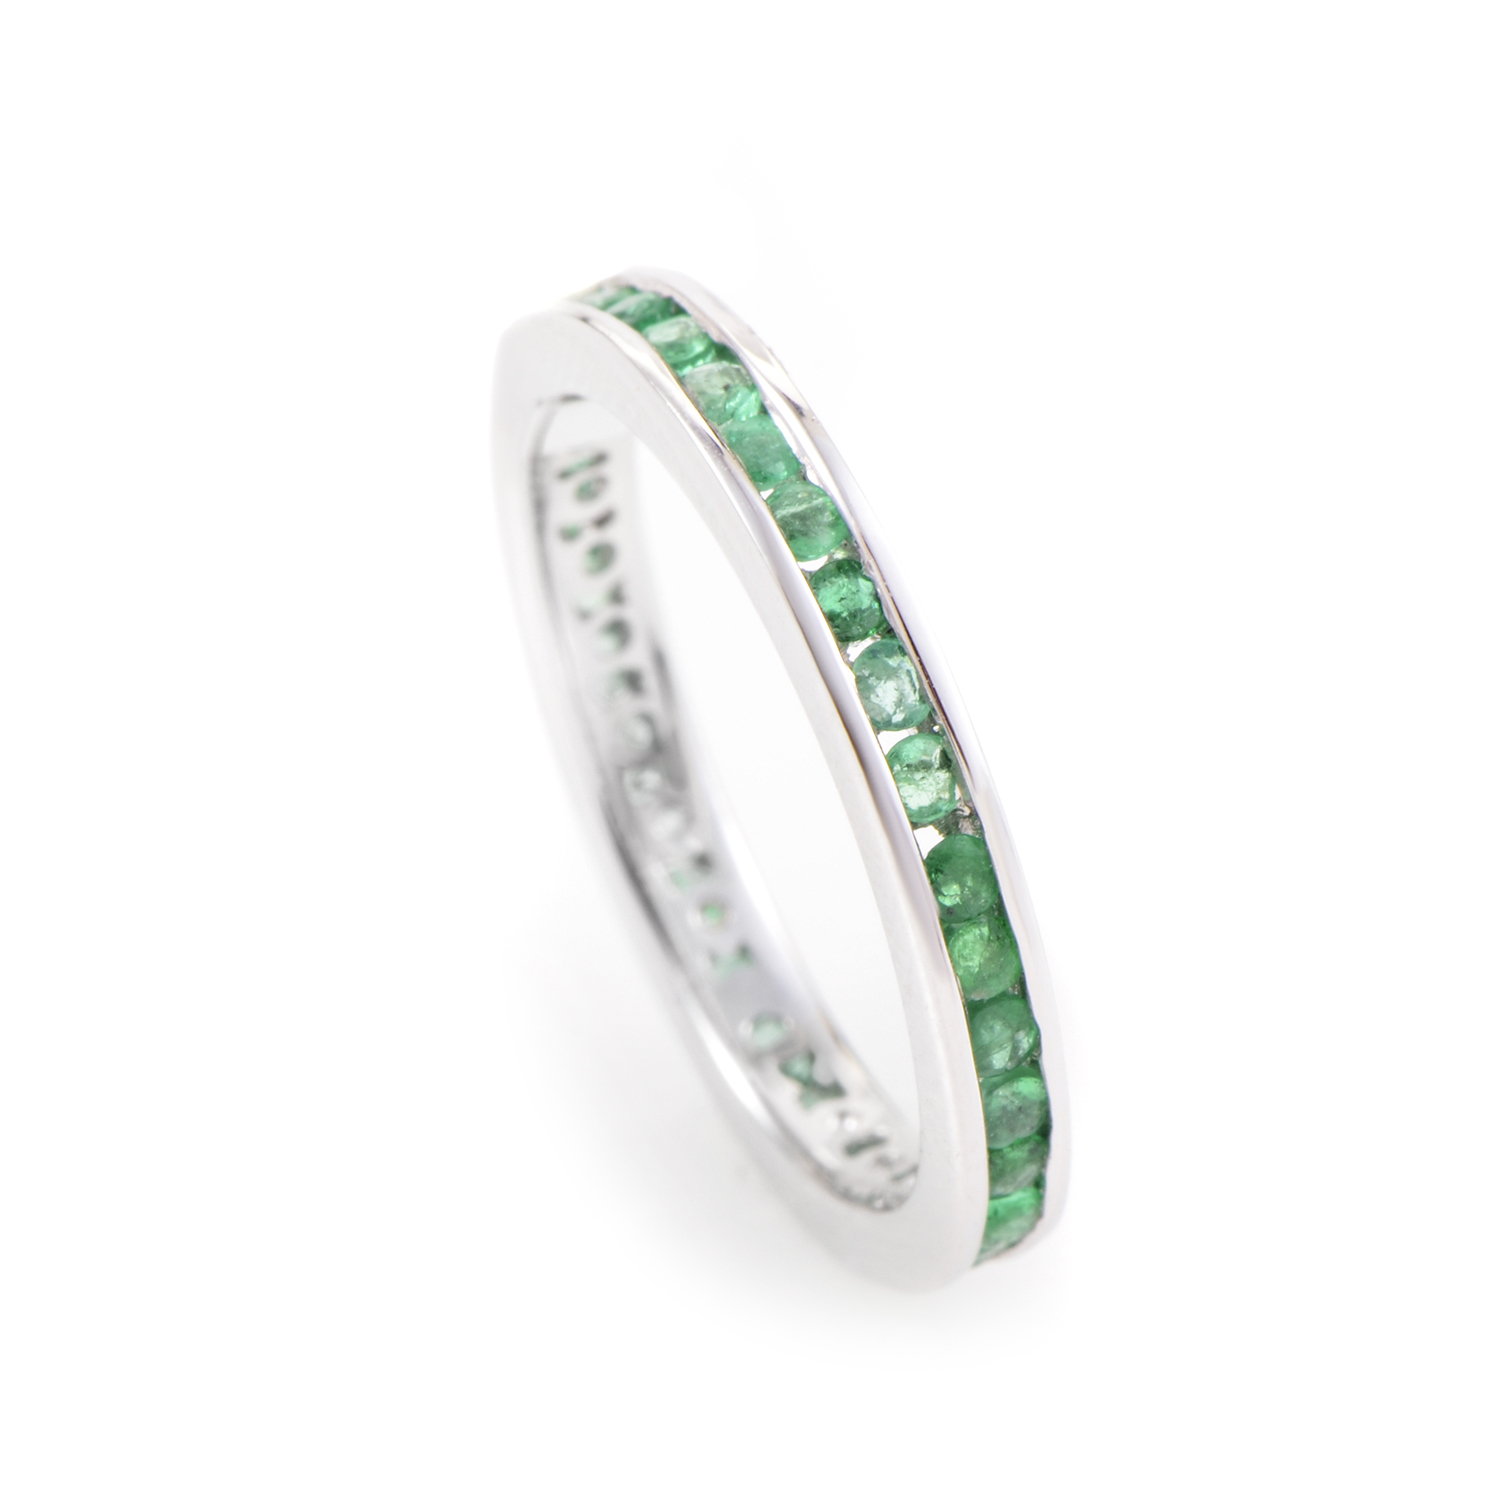 18K White Gold Emerald Eternity Band KOME7149RBZ